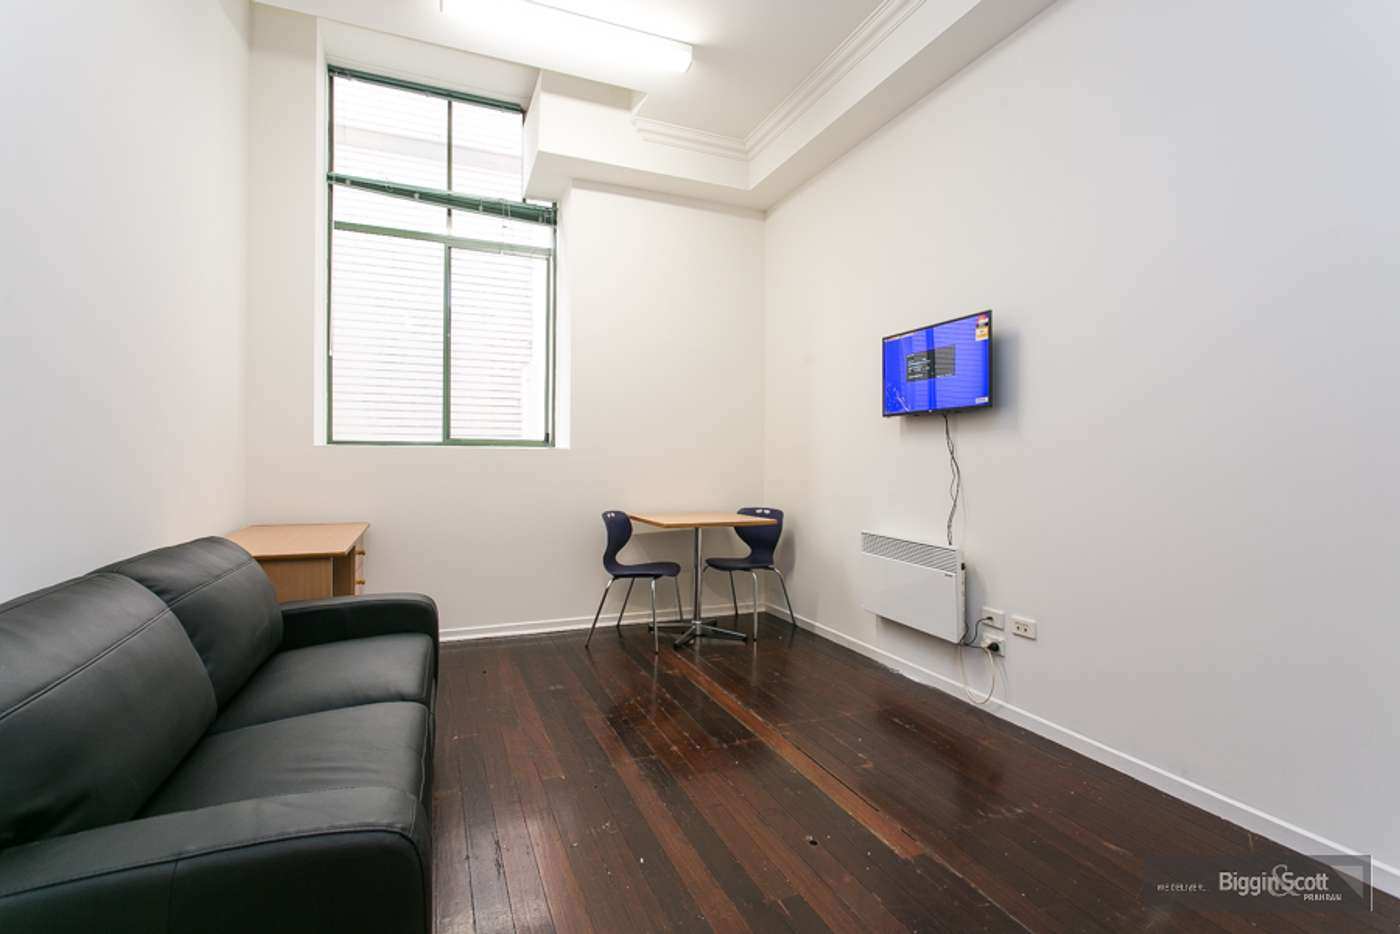 Main view of Homely apartment listing, 211A/441 Lonsdale Street, Melbourne VIC 3000